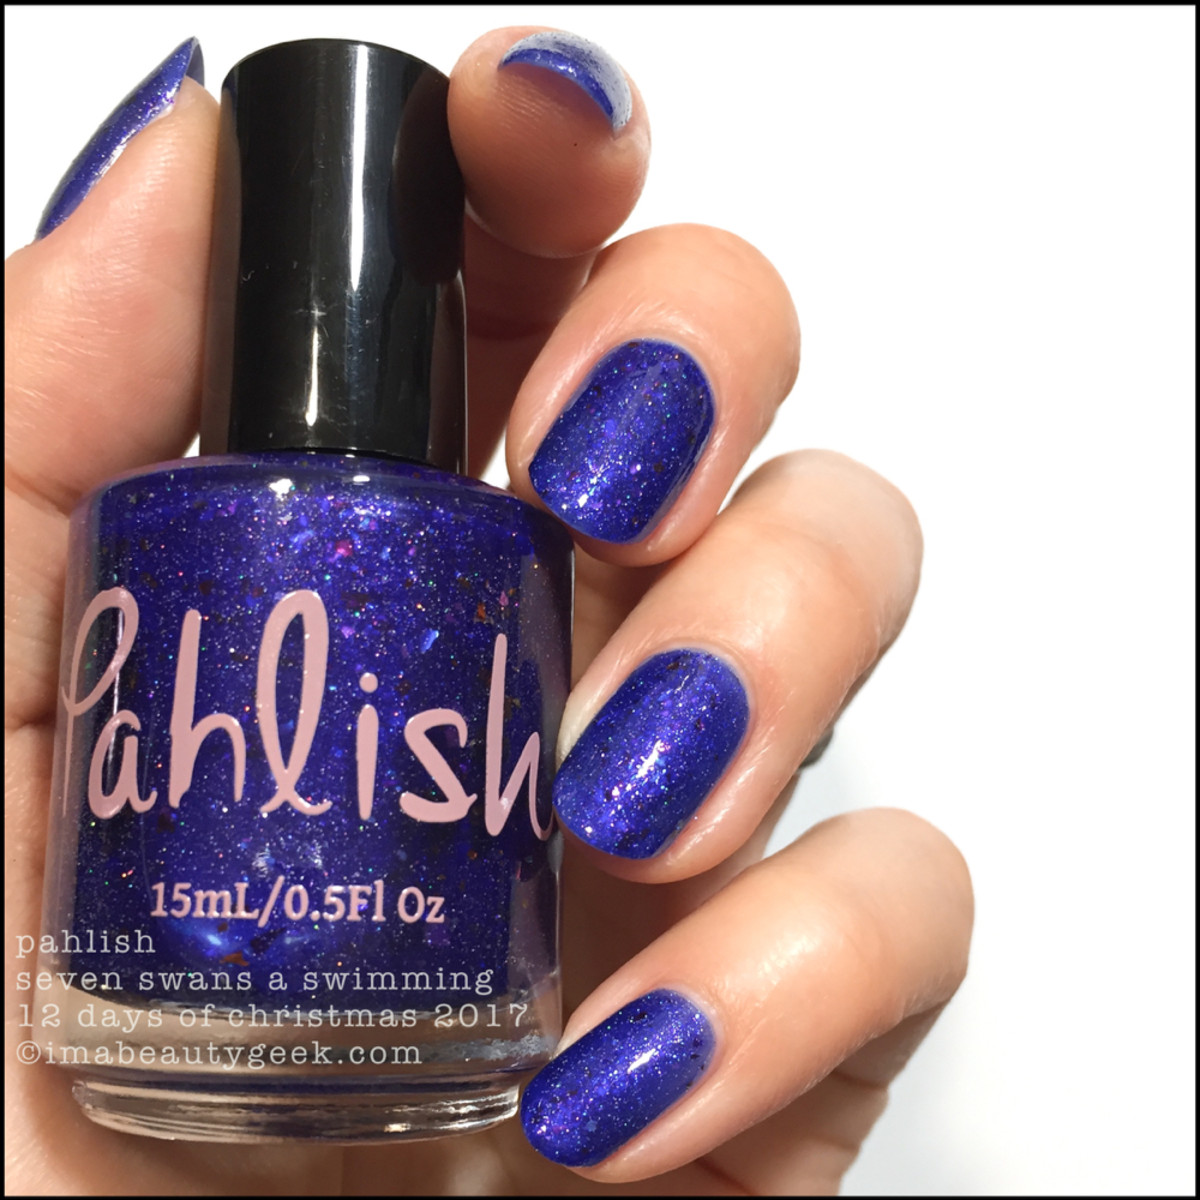 Pahlish Seven Swans a Swimming - Pahlish 12 Days of Christmas 2017 1